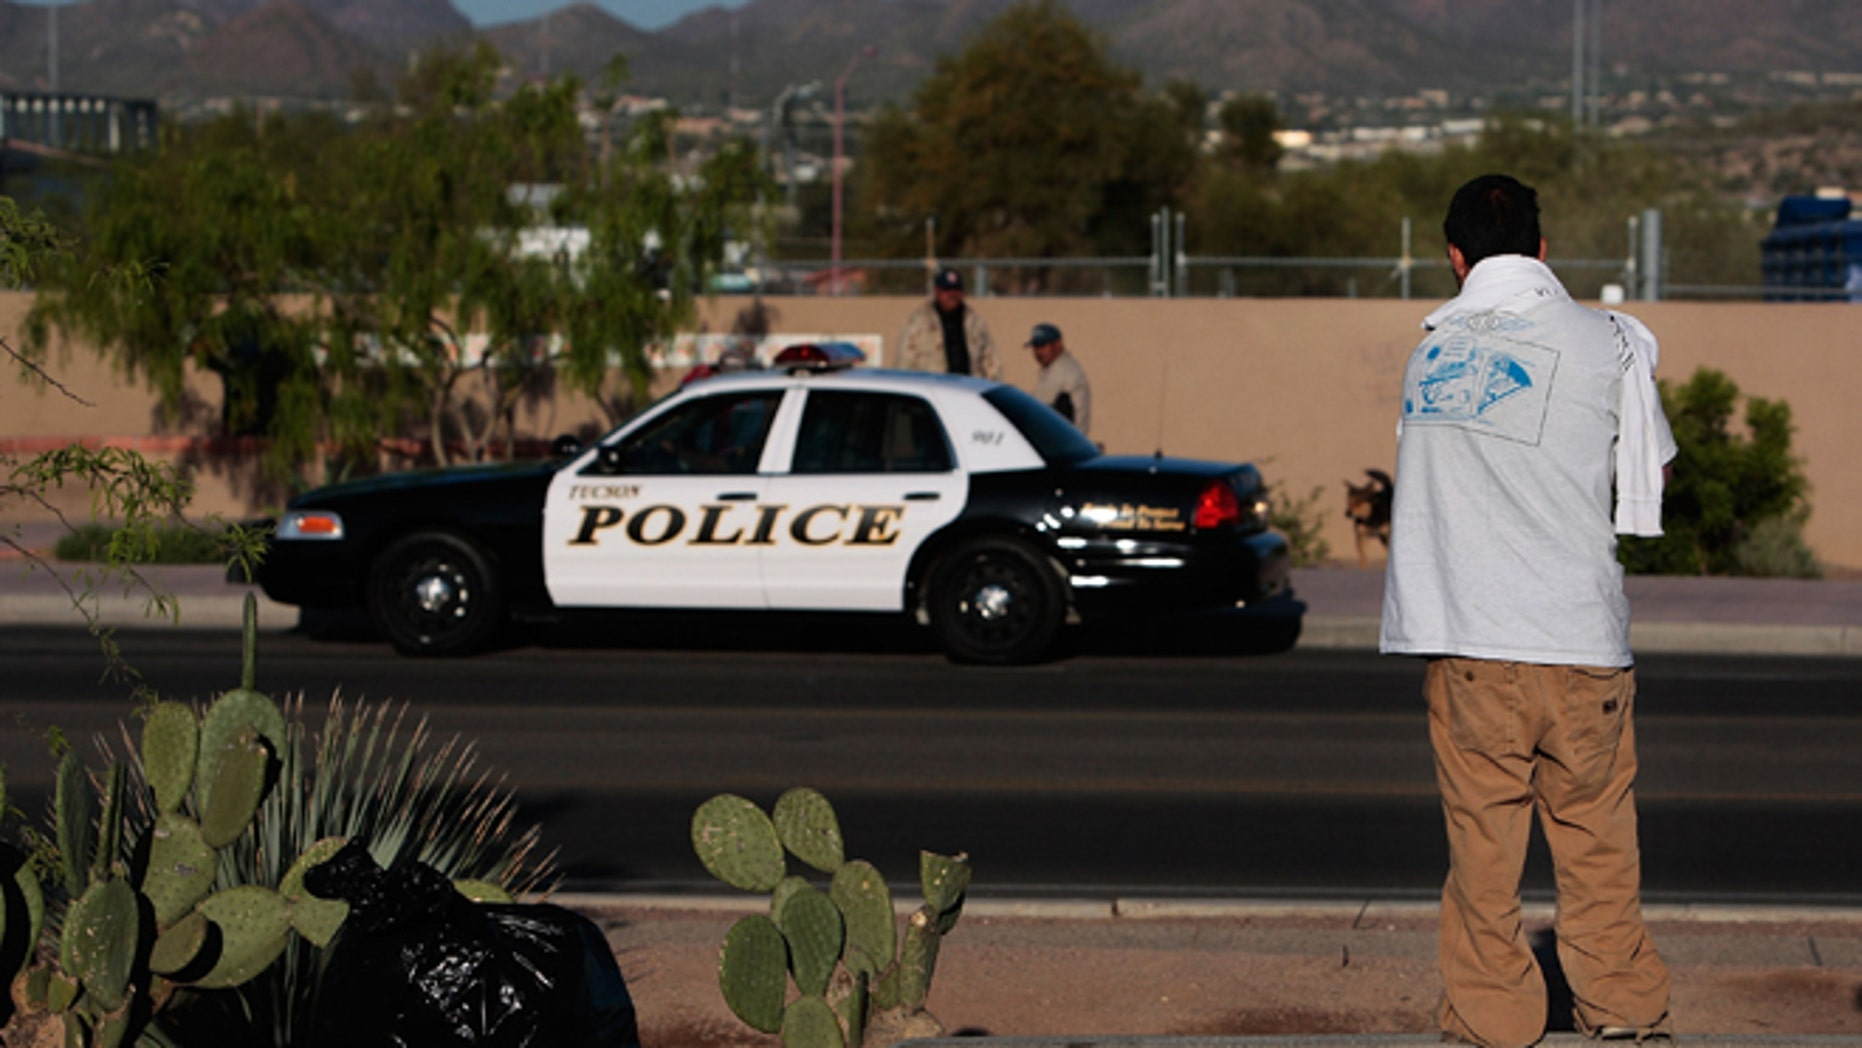 A Hispanic day laborer looking for work watches a police car parked across the street April 5, 2008 in Tucson, Arizona. (Photo by Chris Hondros/Getty Images)